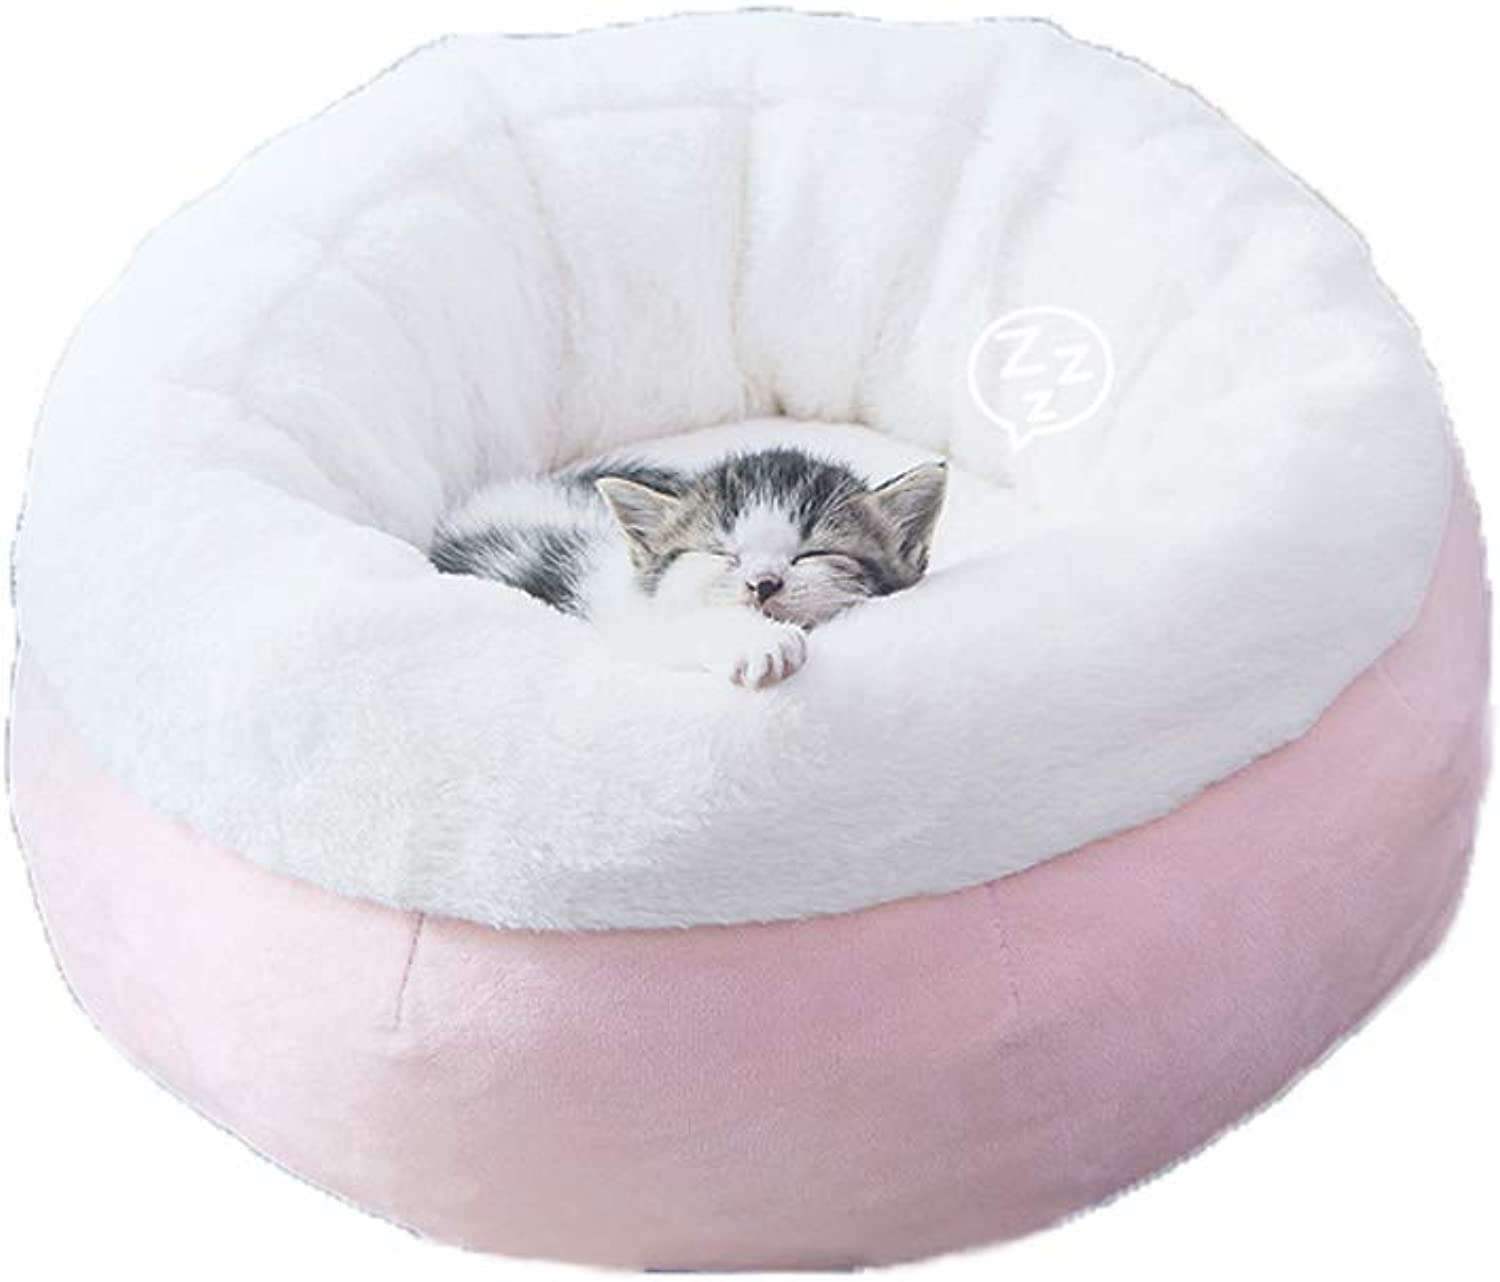 C_1X Cat Litter, Pet Litter, Kennel, Cat Bed, Villa Cat House, Net Red Kennel, Pet Supplies, Pet Bed, Cat Room, (pink 42cm 52cm) (color   Pink, Size   42cm)